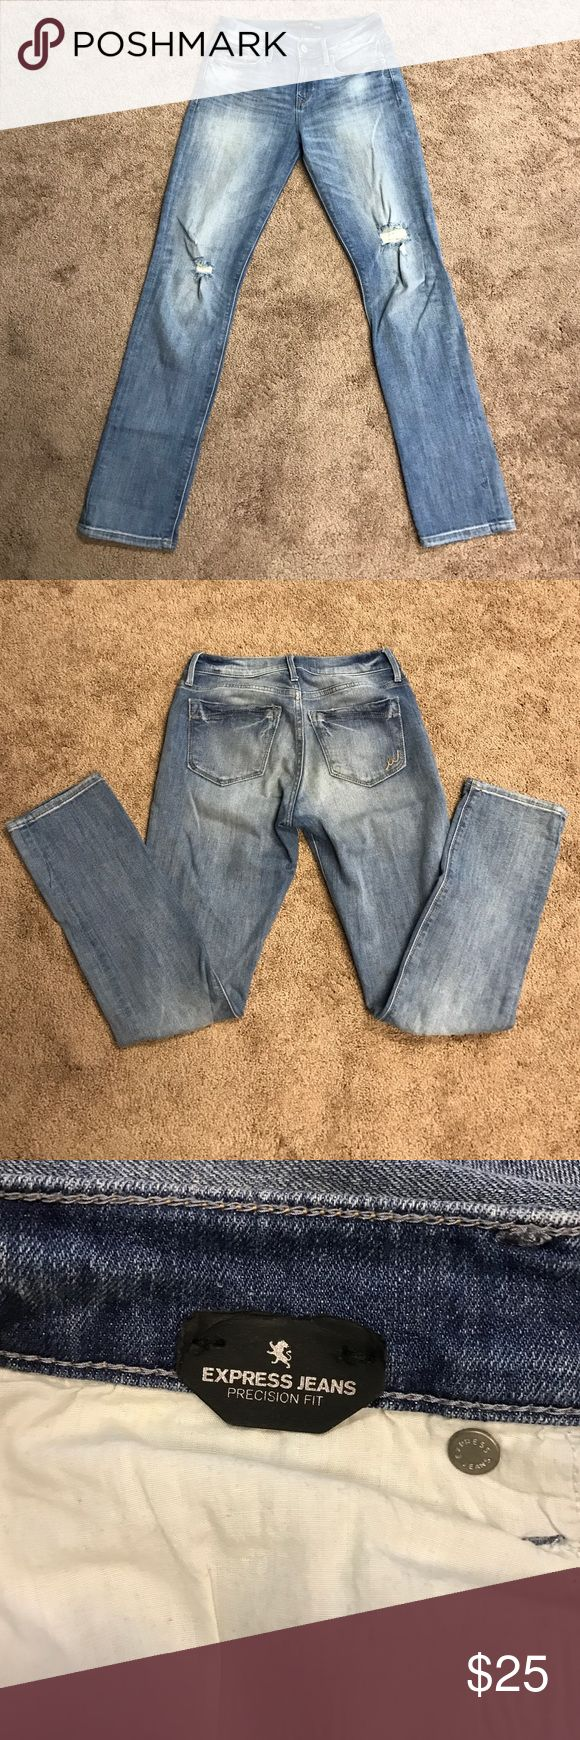 Express jeans Brand new without tags. Store made holes around the knees, but no where else. In excellent condition! Precision fit, cropped skinny, midrise. Express Pants